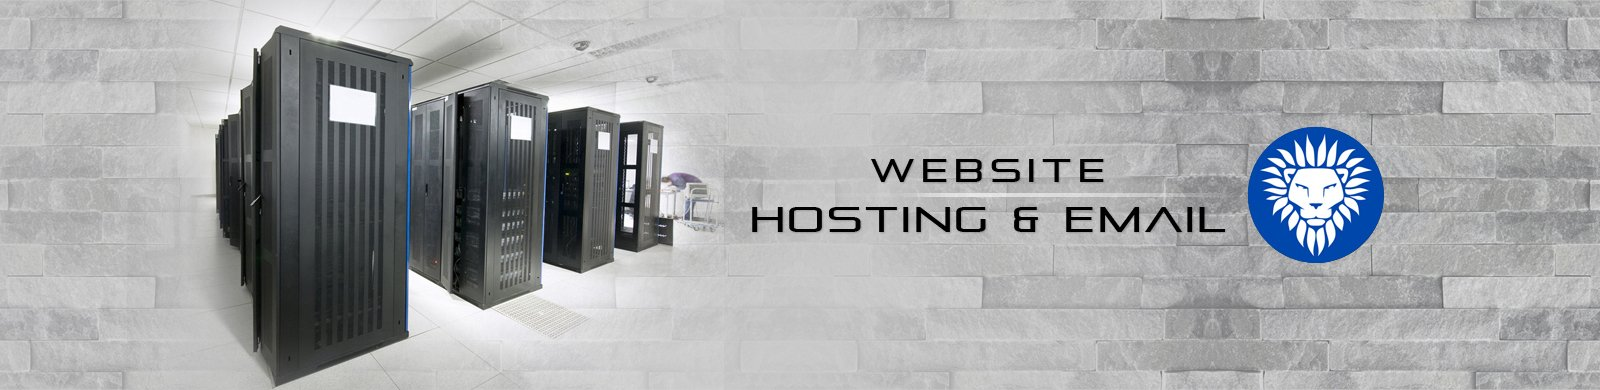 Website Hosting & Email